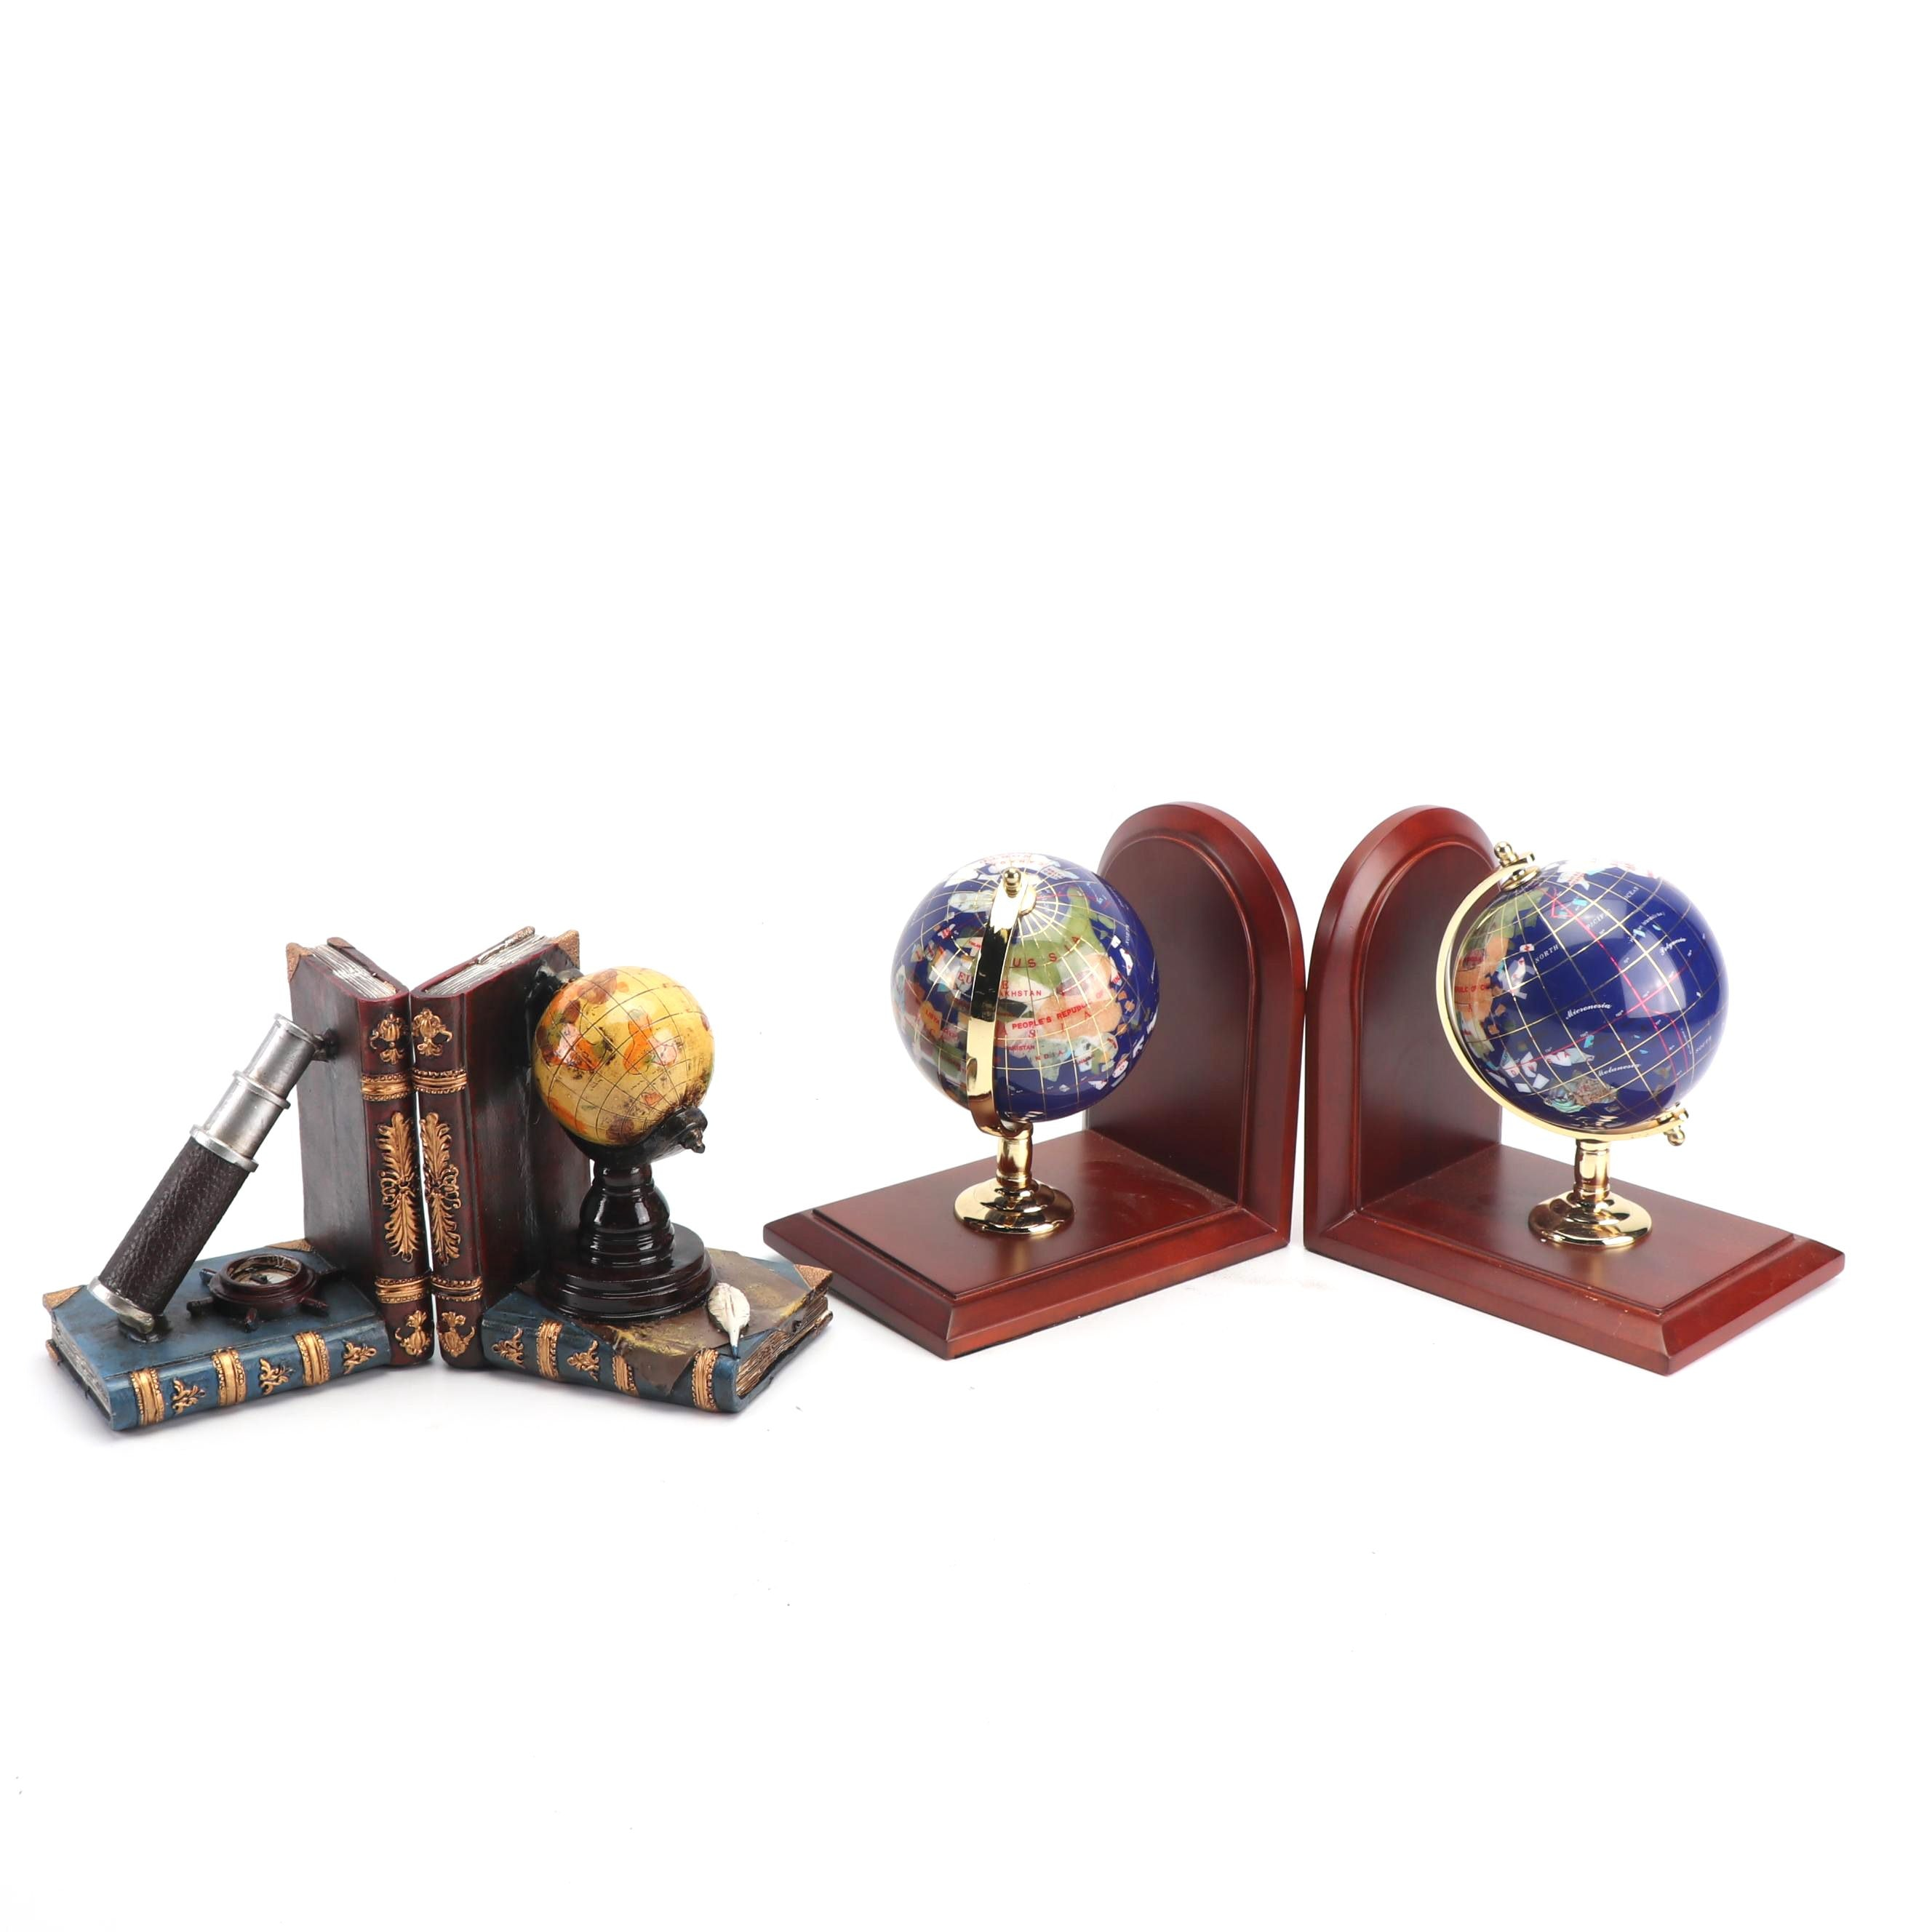 Gemstone Globe Bookends with Cast Resin Explorer Motif Bookends